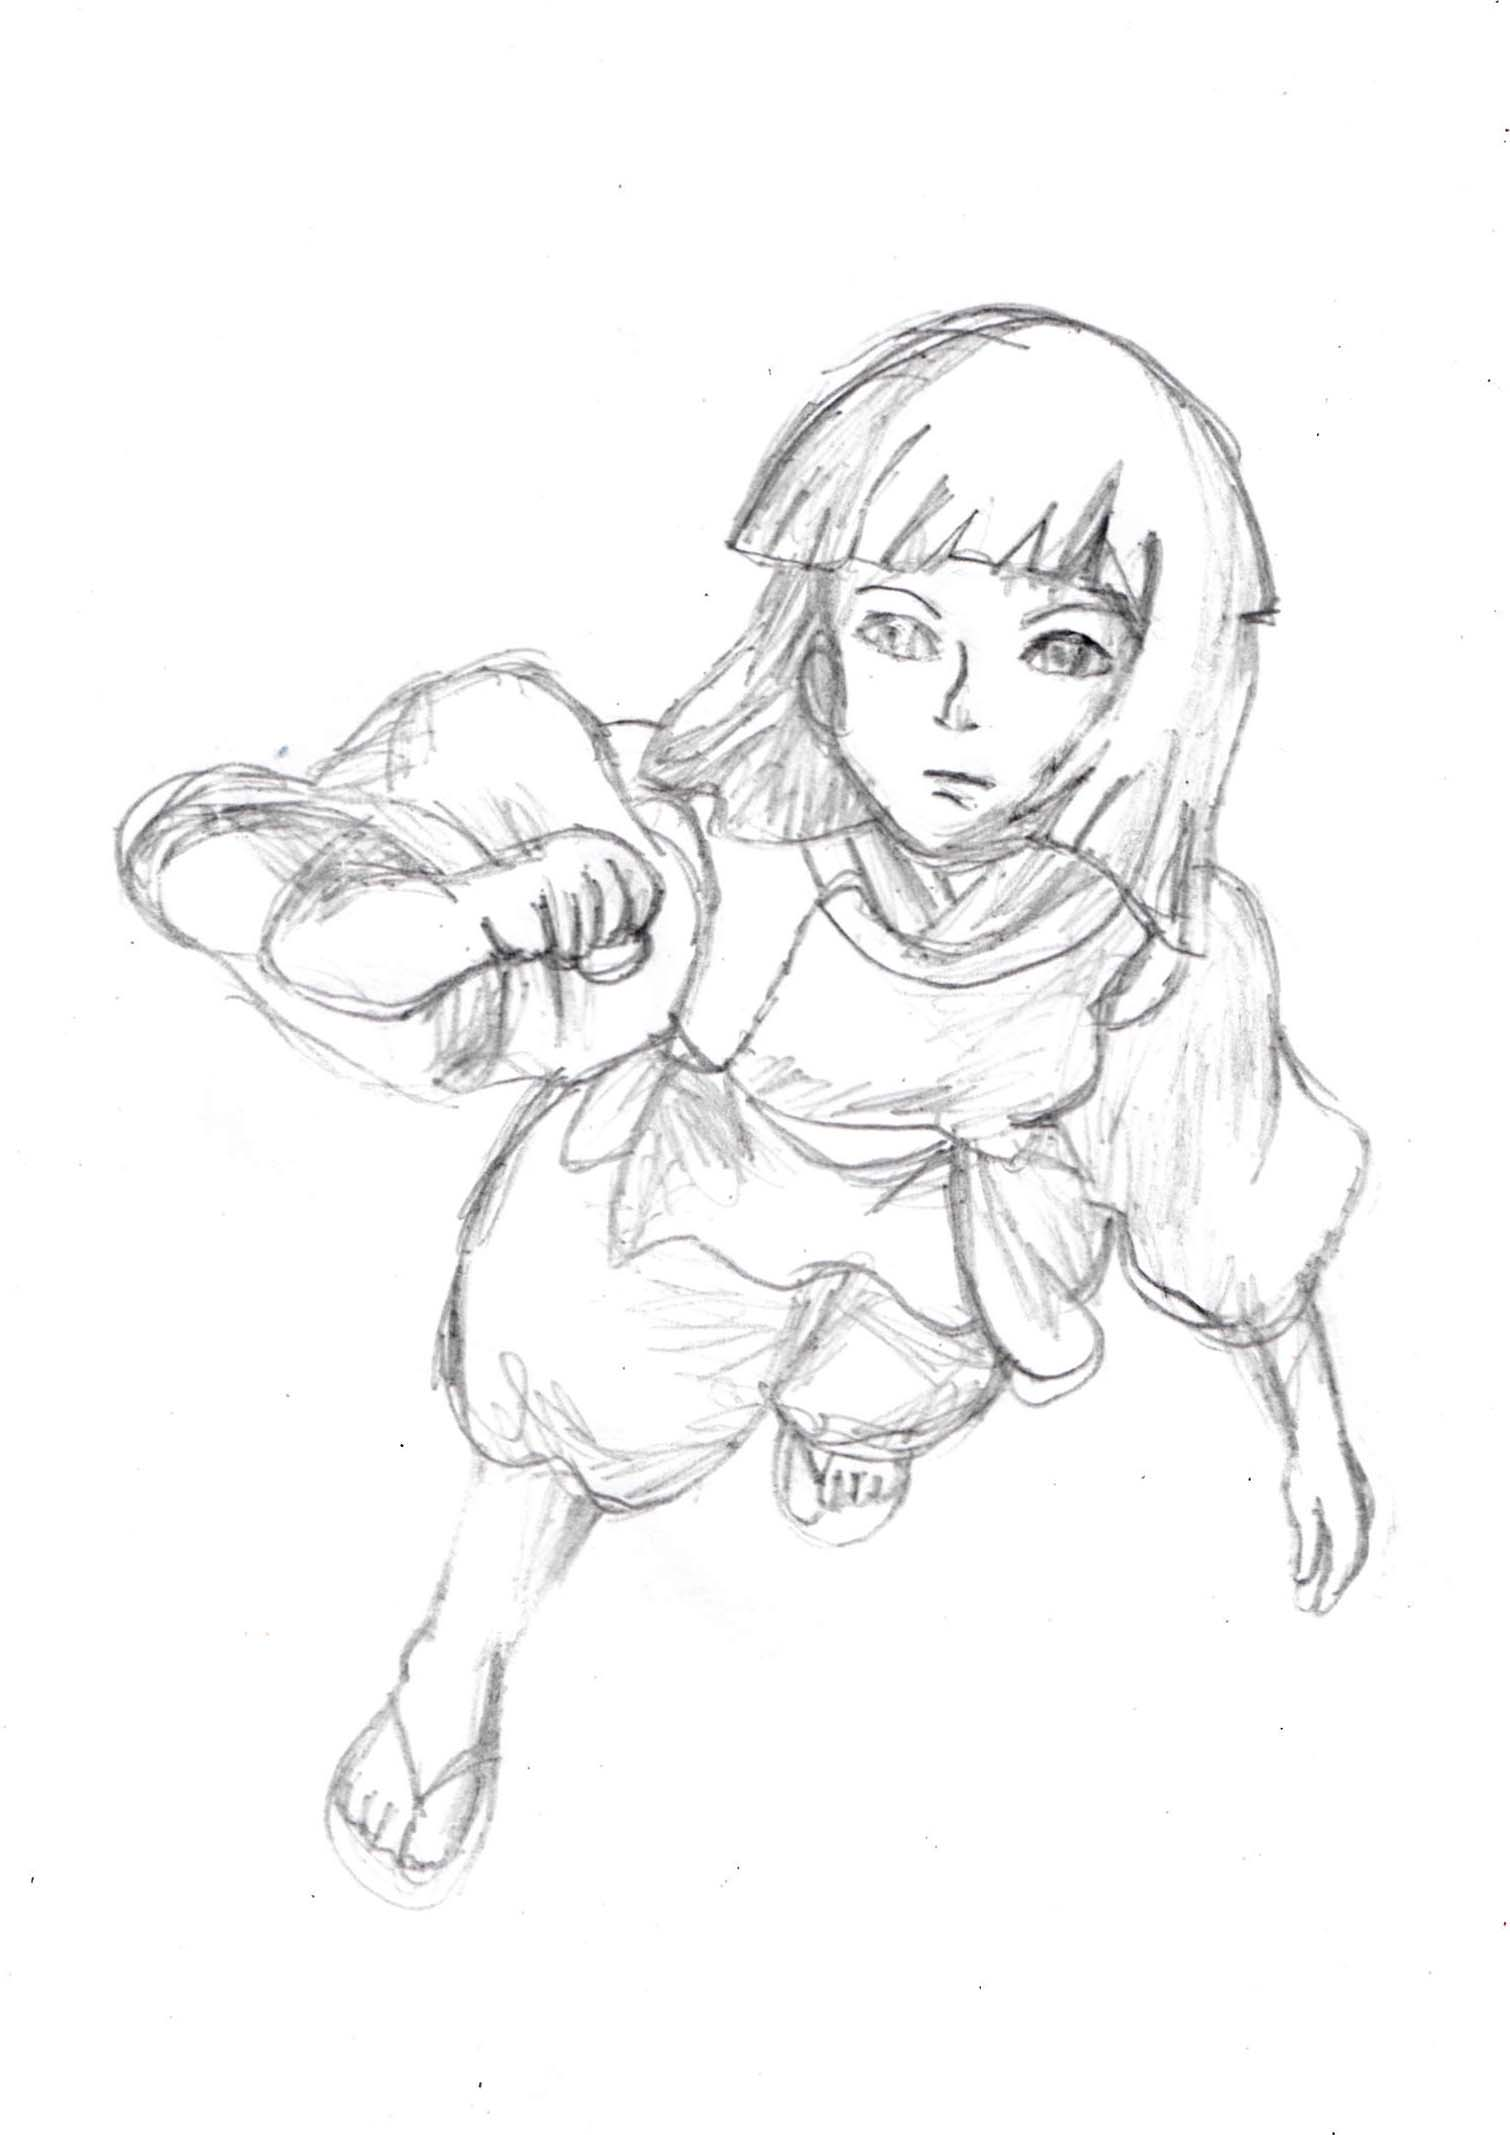 Spte by step tutorial of Anime Manga character from